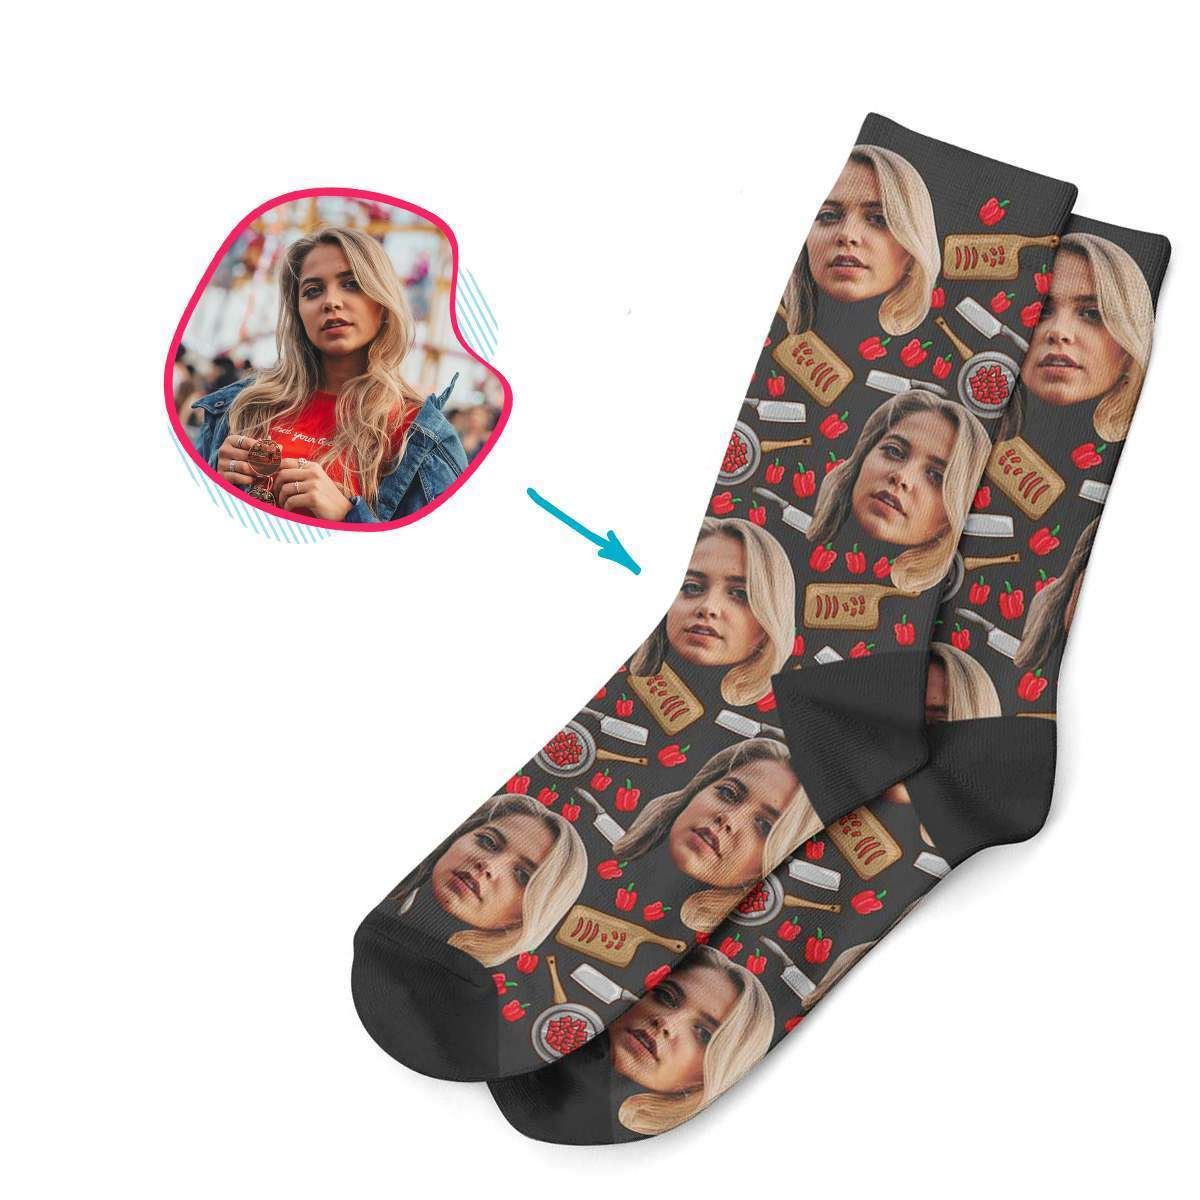 dark Сooking socks personalized with photo of face printed on them